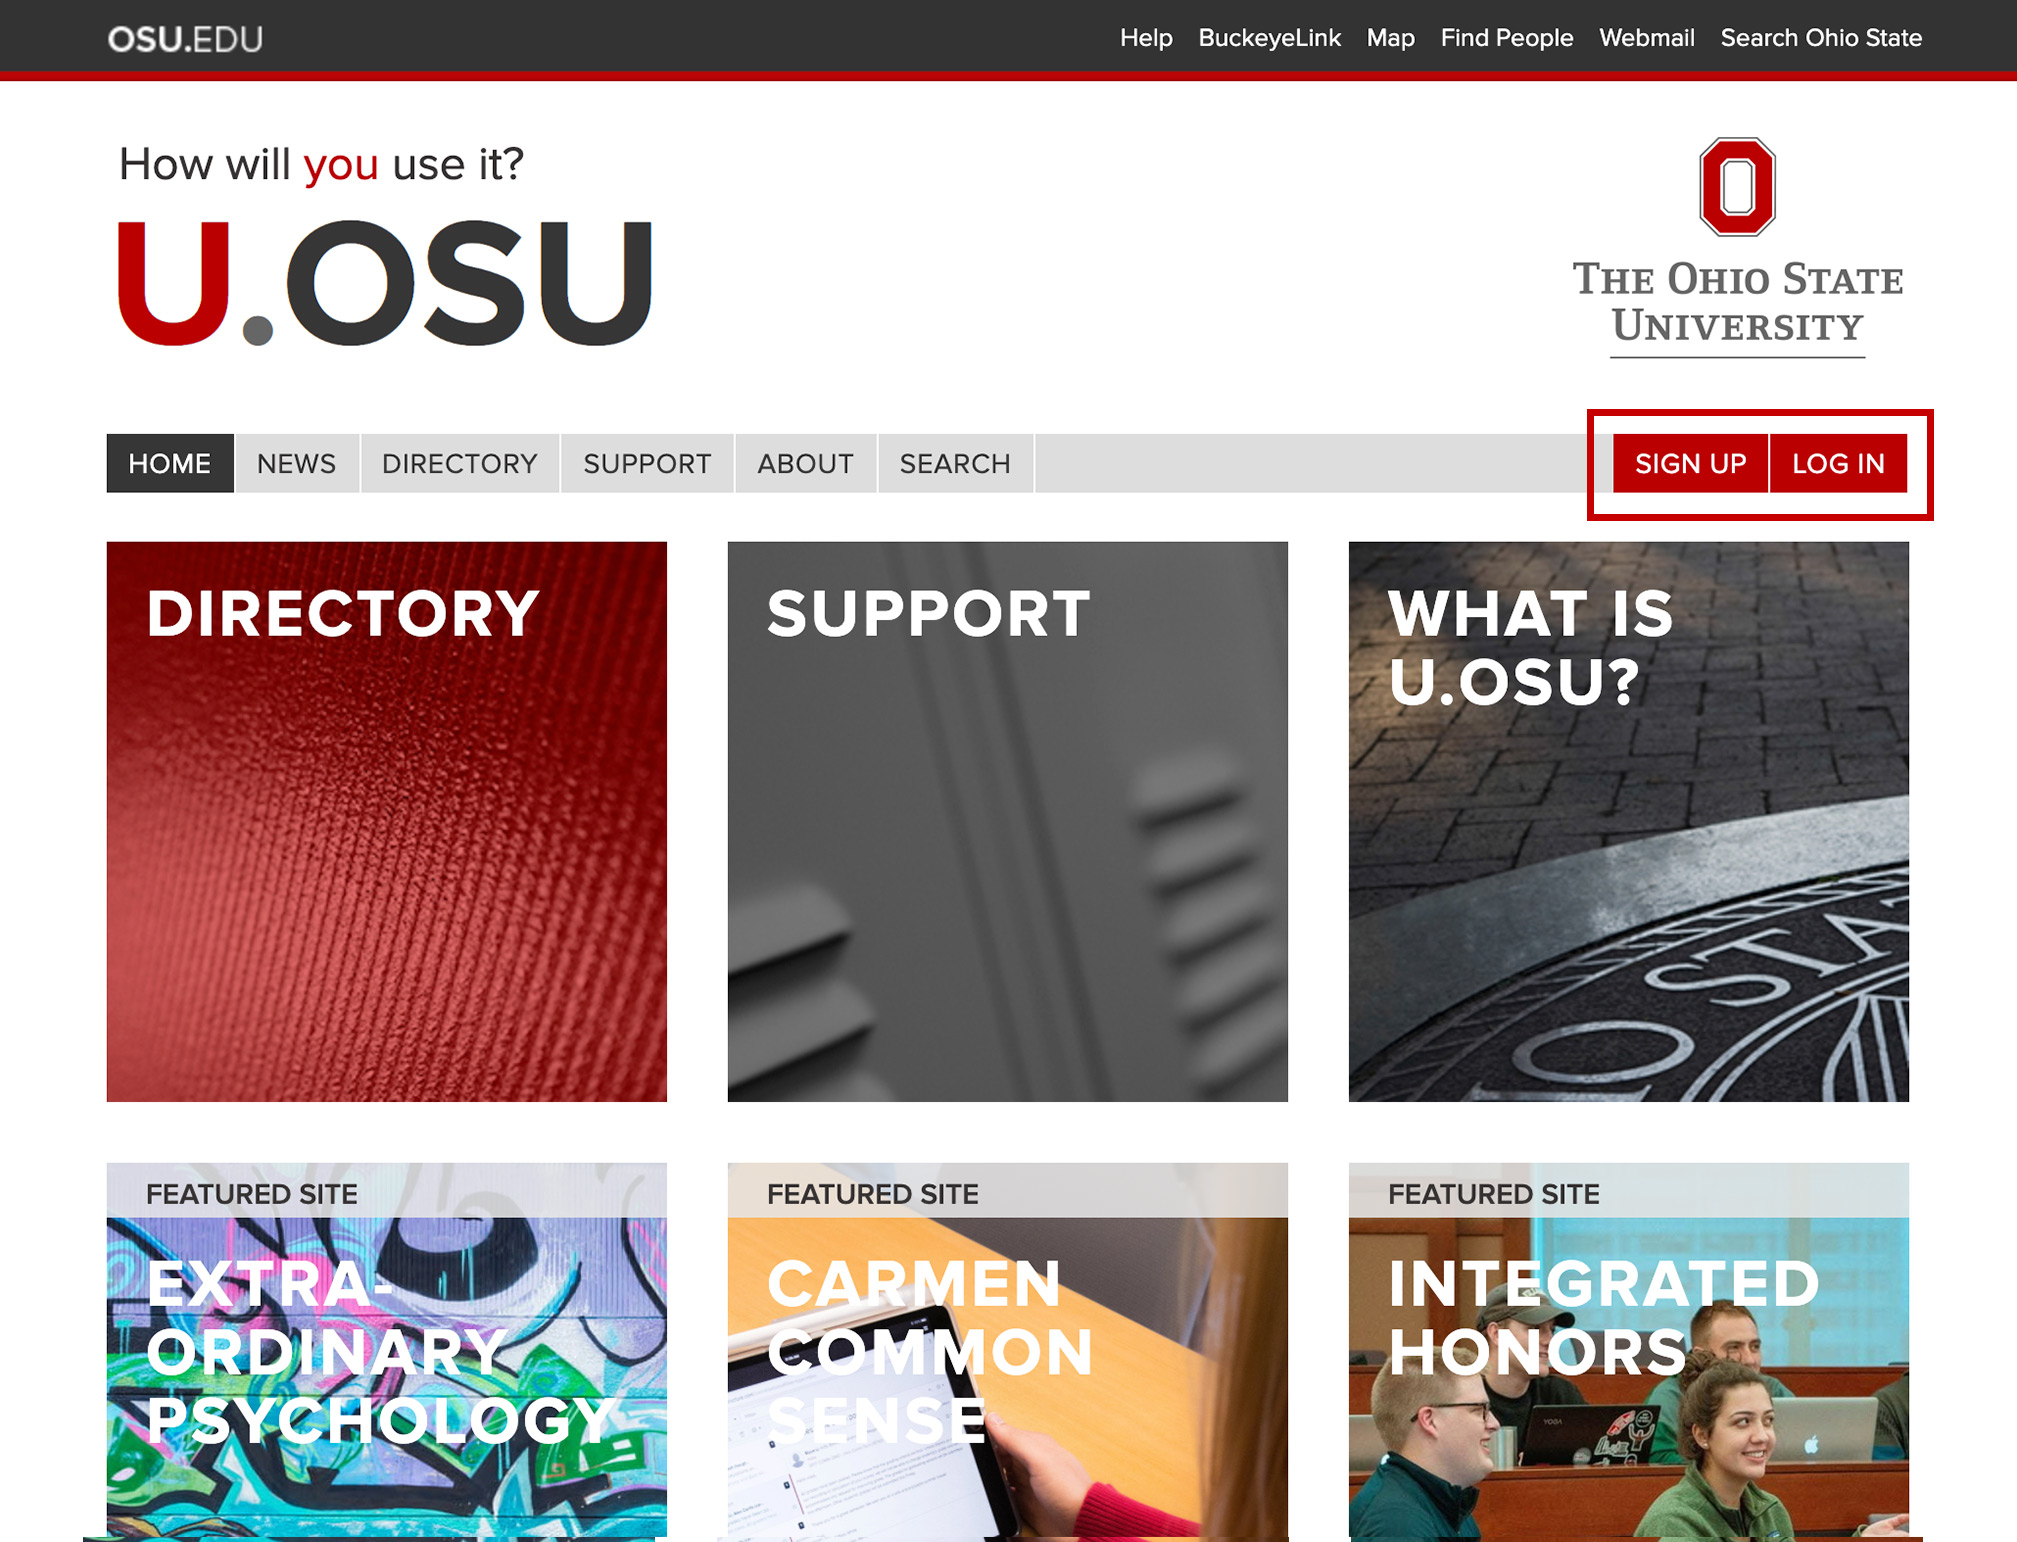 Sign Up and Log In buttons on U.OSU home page